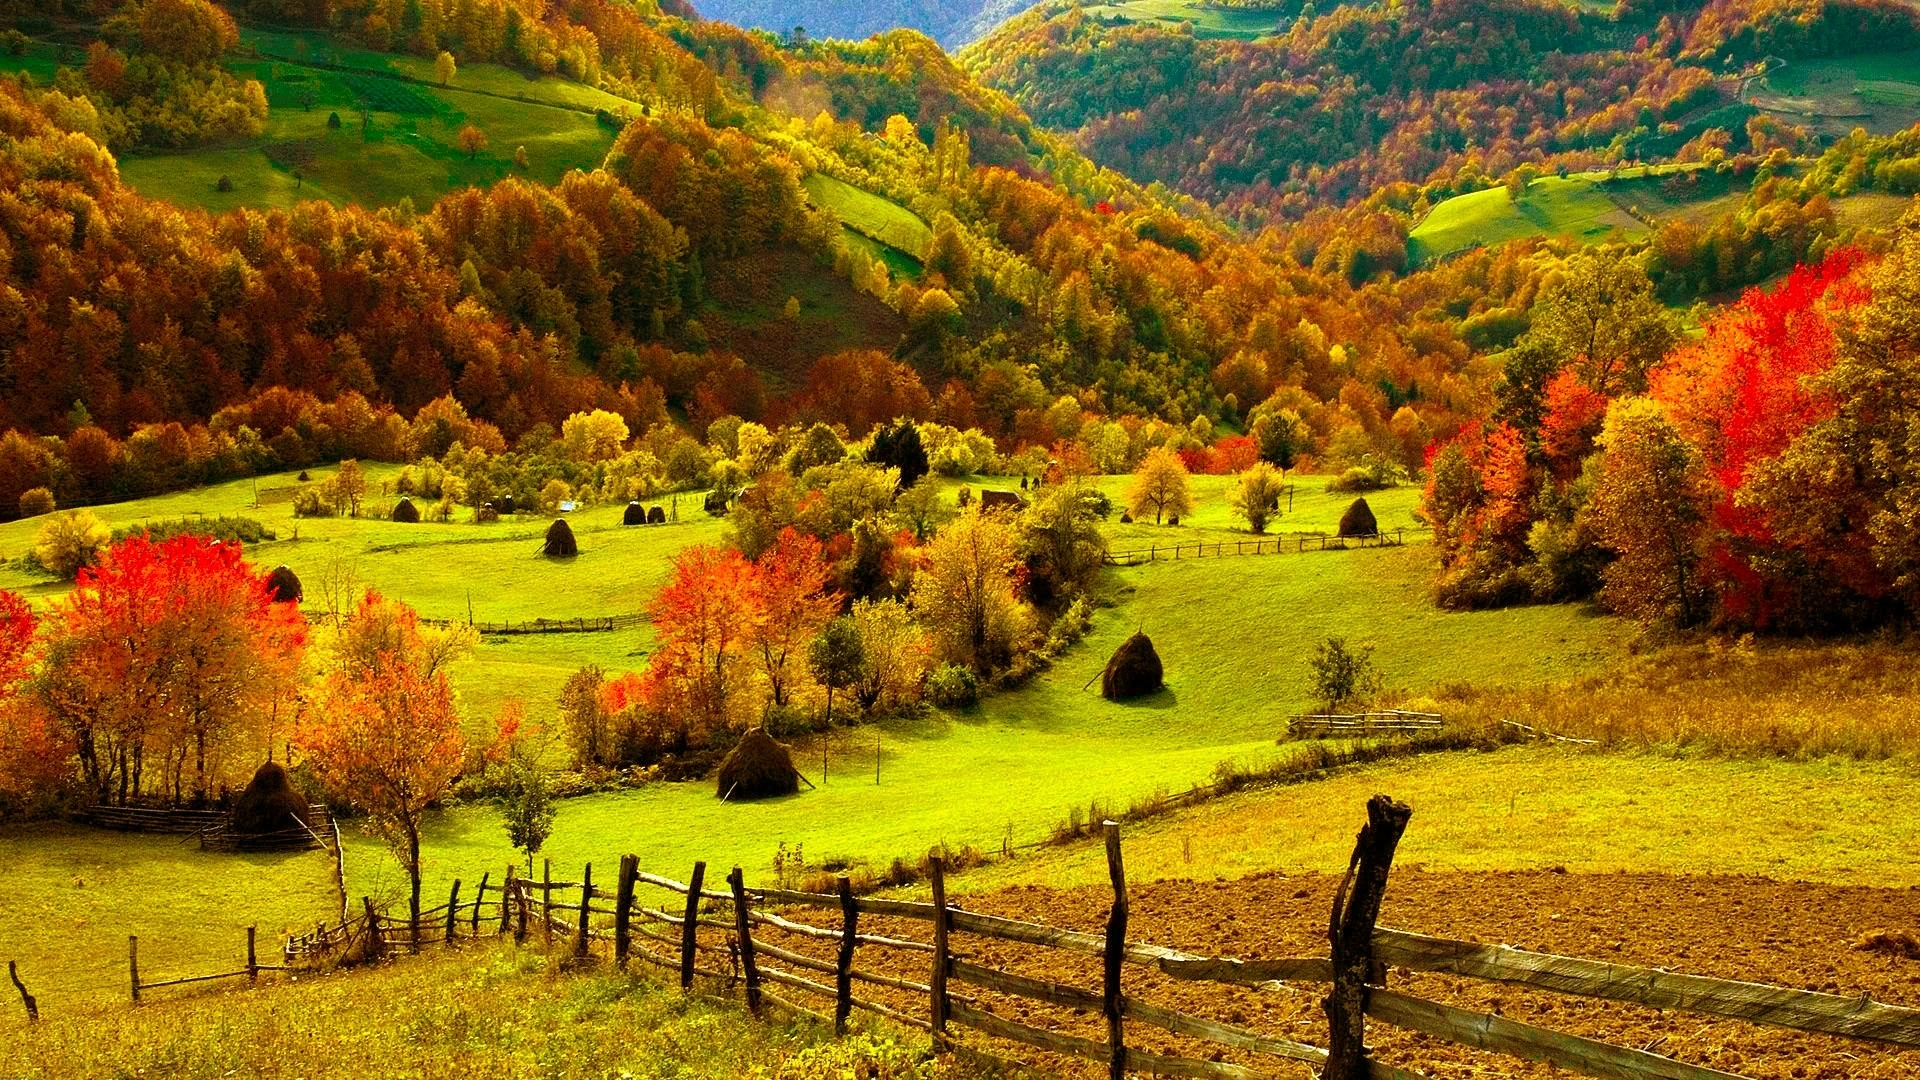 forests autumn fall seasons leaves color scenic view bright wallpaper 1920x1080